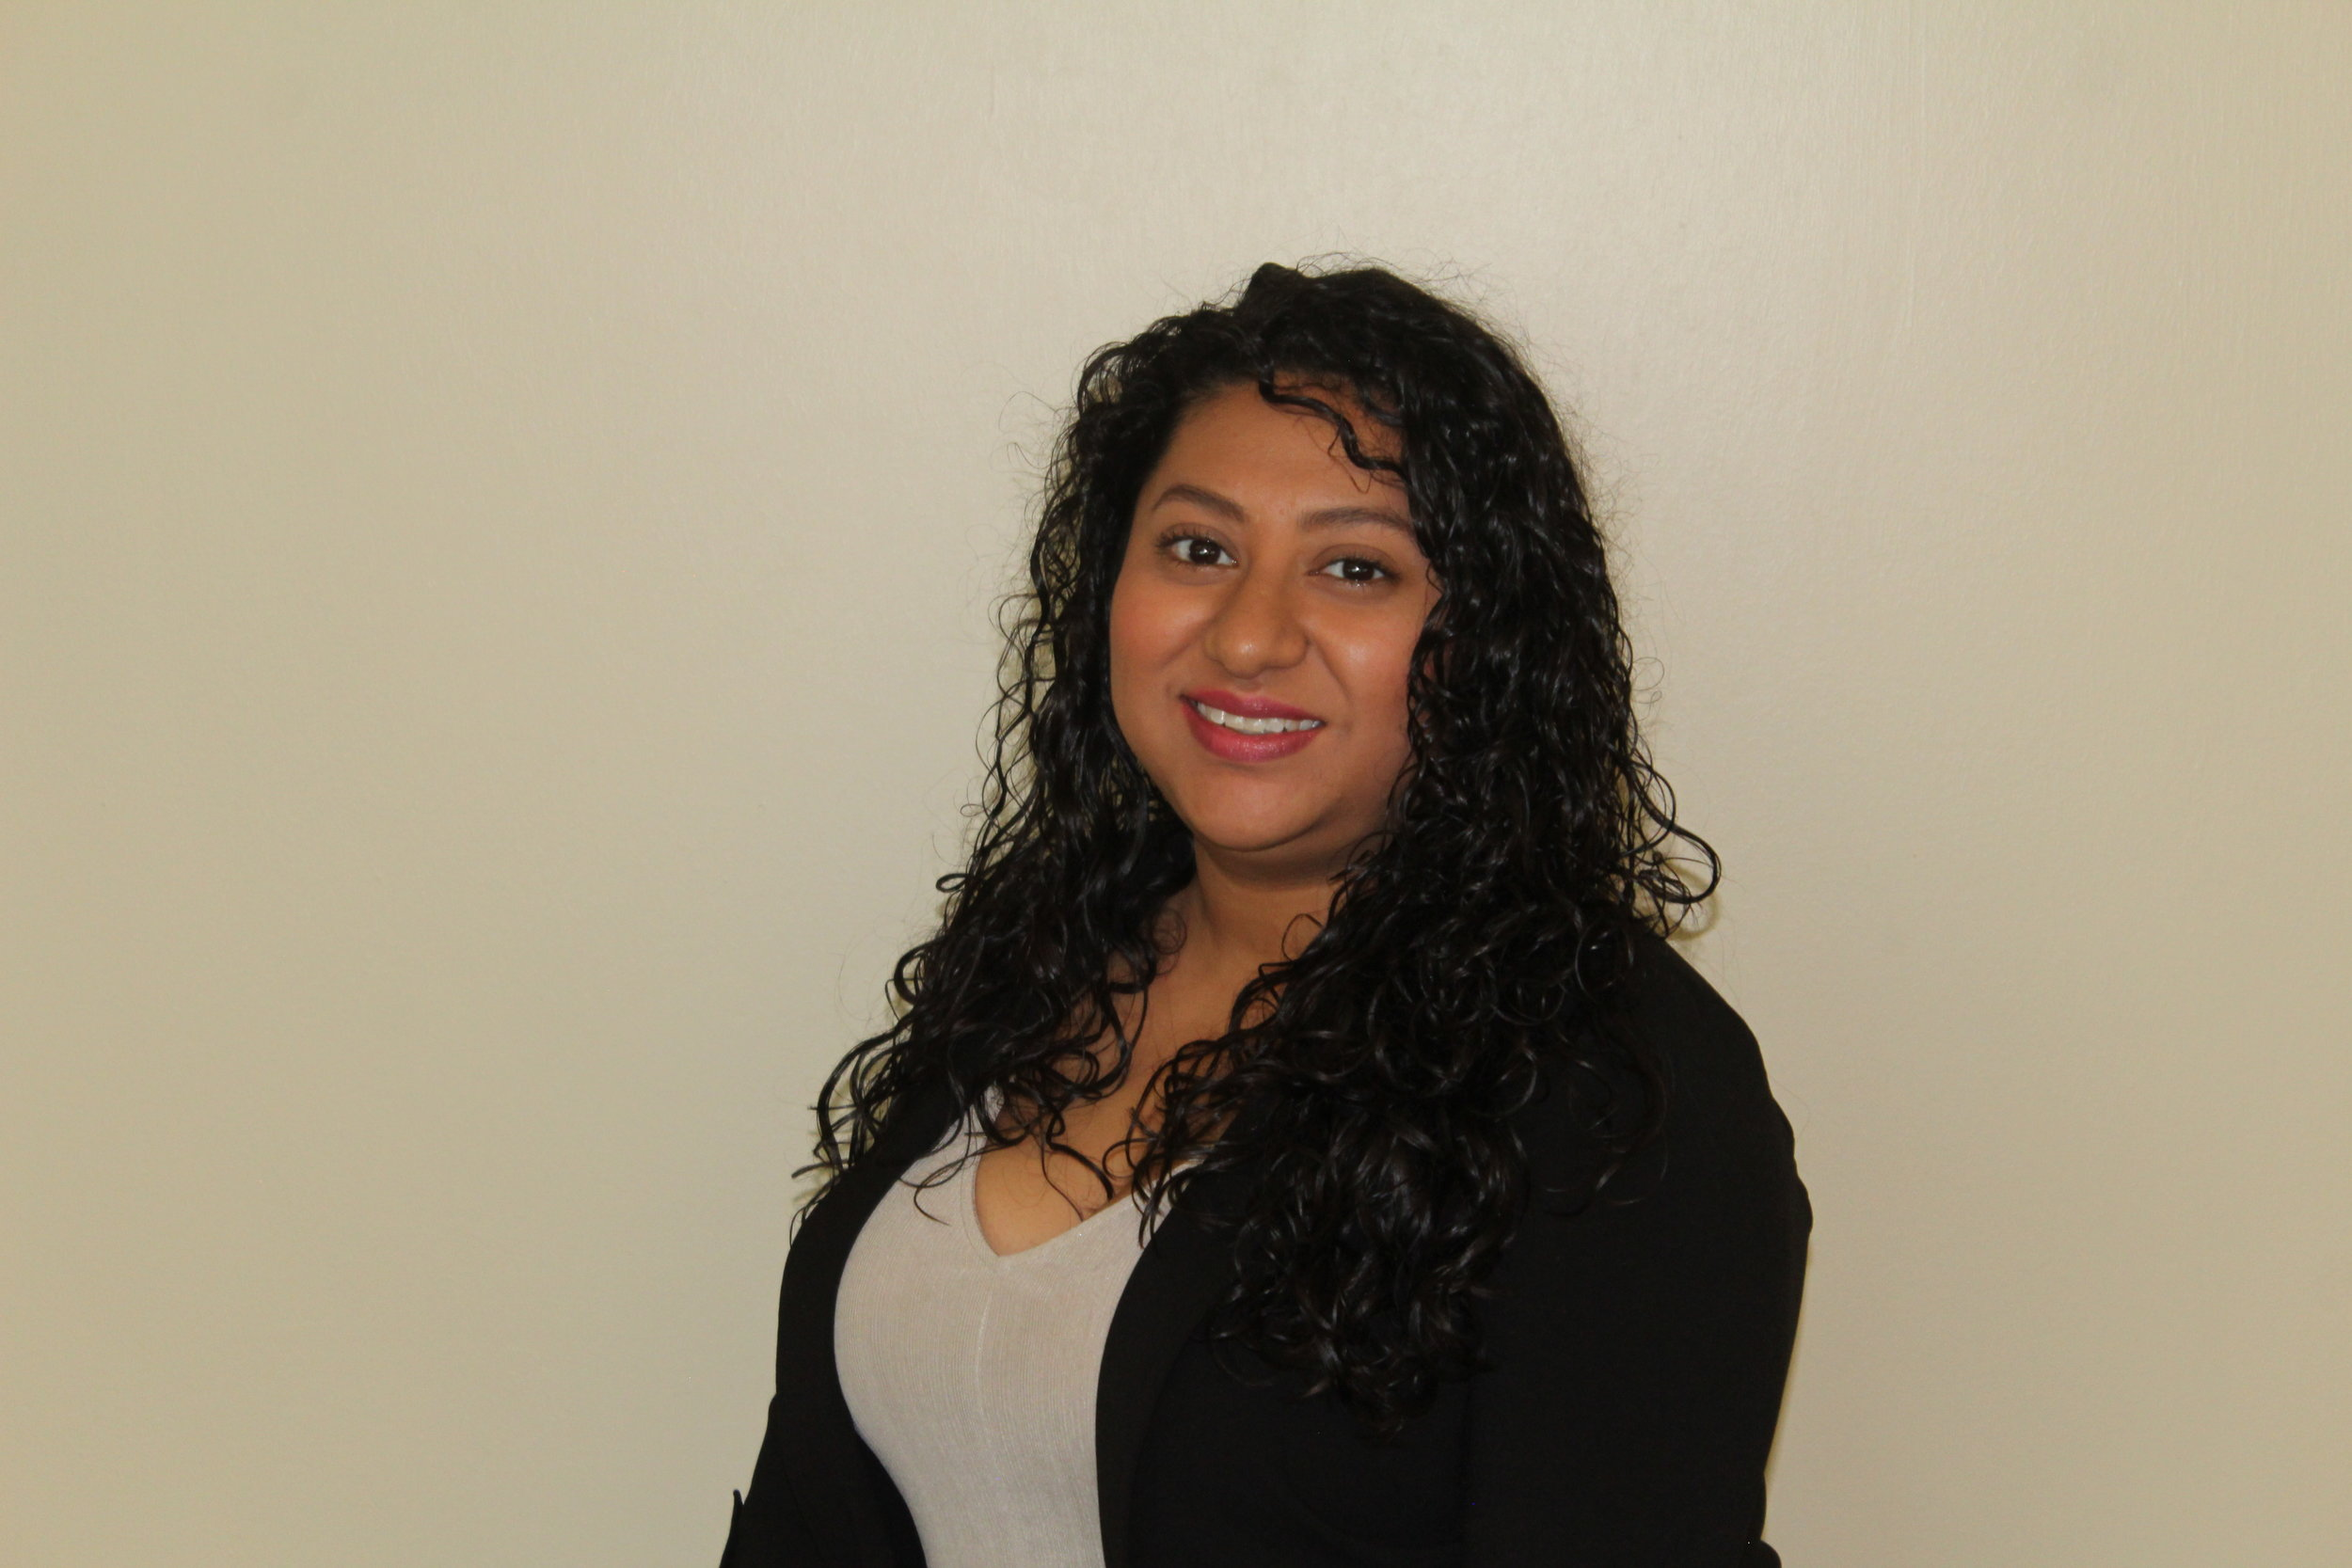 Julia Garrido, Transfer Admission Coordinator, University of Texas at Arlington